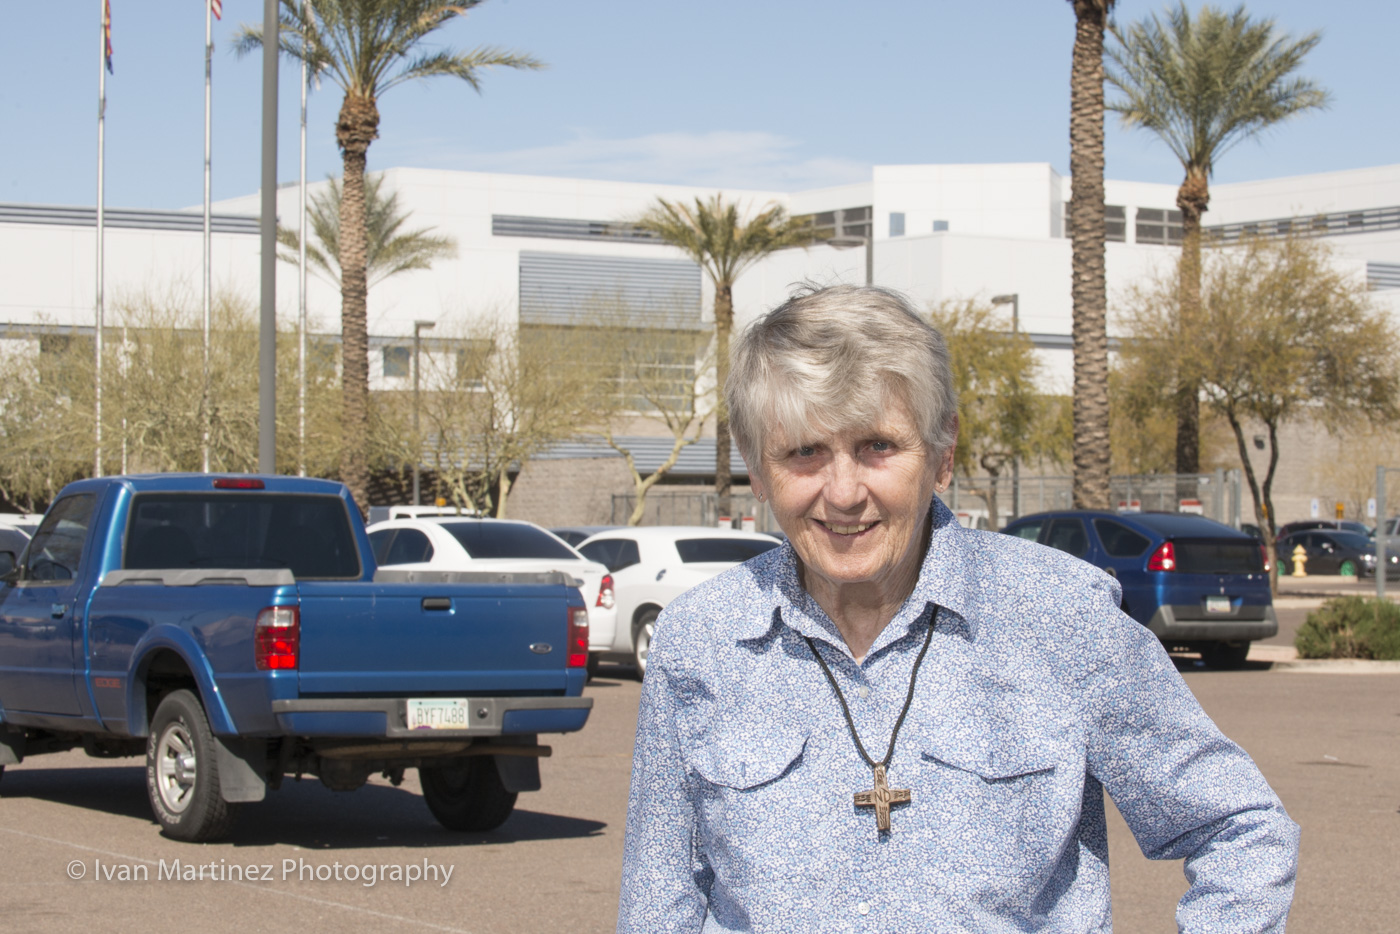 Sister Mag of Sisters of Notre Dam de Namur in from of the Buckeye Jail in Phoenix